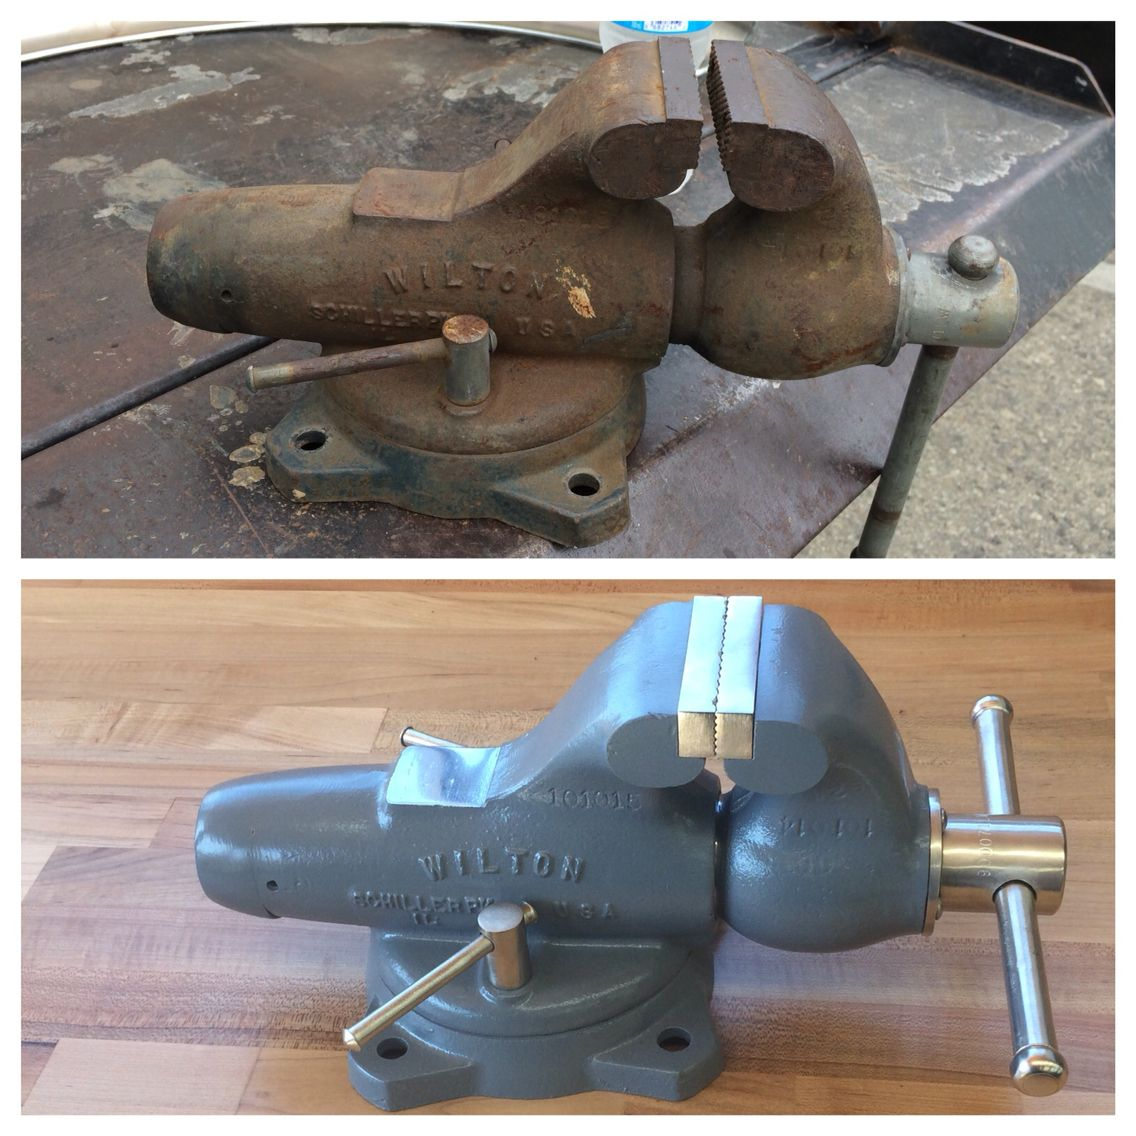 Before And After Wilton Vise Restoration Tools